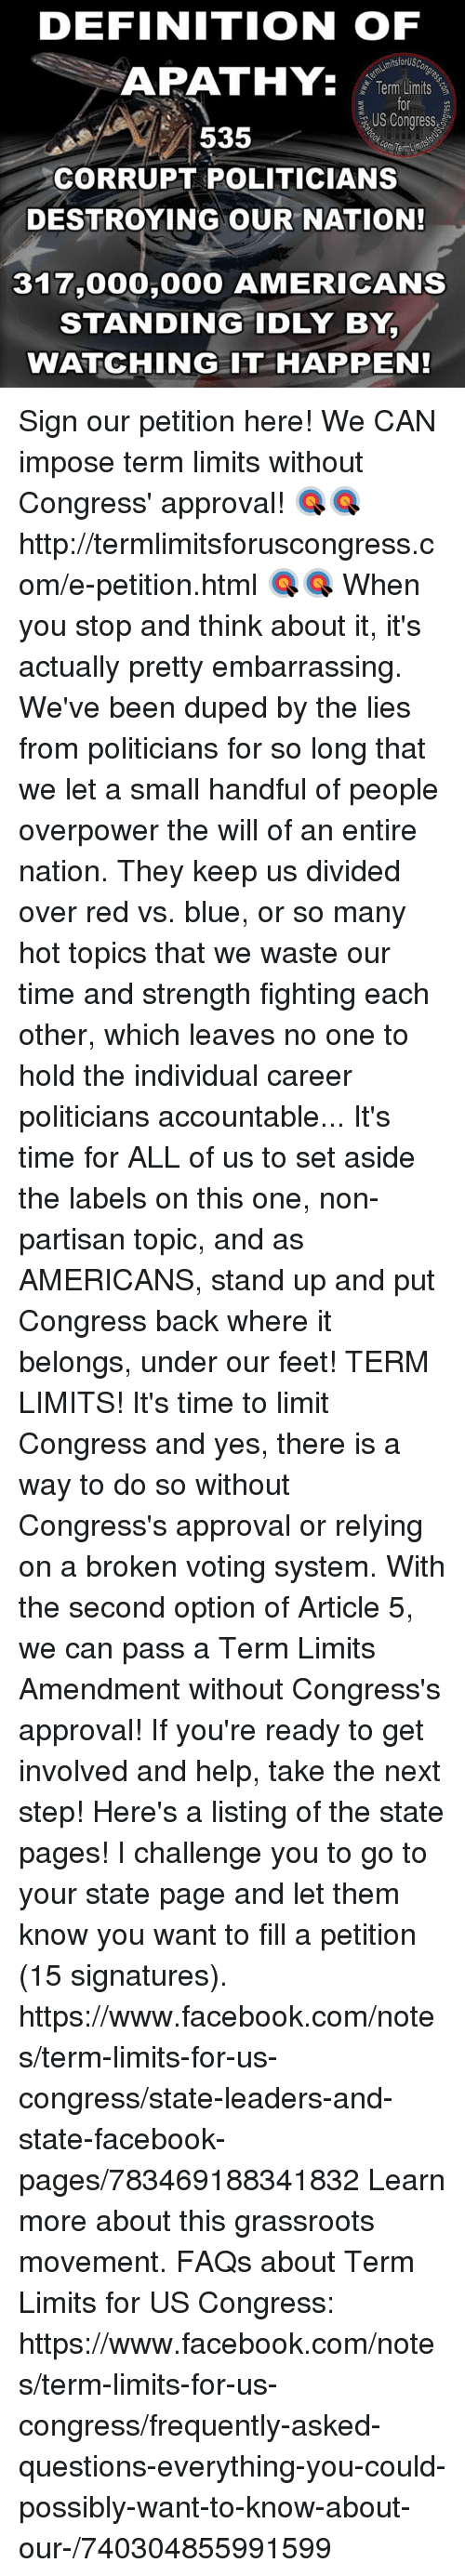 Small Hands: DEFINITION OF  itsforUSC  APATHY.  Term Limits  US Congress  535  CORRUPT POLITICIANS  DESTROYING OUR NATION!  317,000  AMERICANS  STANDING IDLY BY,  WATCHING IT HAPPEN! Sign our petition here! We CAN impose term limits without Congress' approval! 🎯🎯http://termlimitsforuscongress.com/e-petition.html 🎯🎯  When you stop and think about it, it's actually pretty embarrassing.  We've been duped by the lies from politicians for so long that we let a small handful of people overpower the will of an entire nation.  They keep us divided over red vs. blue, or so many hot topics that we waste our time and strength fighting each other, which leaves no one to hold the individual career politicians accountable...  It's time for ALL of us to set aside the labels on this one, non-partisan topic, and as AMERICANS, stand up and put Congress back where it belongs, under our feet!  TERM LIMITS!  It's time to limit Congress and yes, there is a way to do so without Congress's approval or relying on a broken voting system.  With the second option of Article 5, we can pass a Term Limits Amendment without Congress's approval!  If you're ready to get involved and help, take the next step! Here's a listing of the state pages! I challenge you to go to your state page and let them know you want to fill a petition (15 signatures). https://www.facebook.com/notes/term-limits-for-us-congress/state-leaders-and-state-facebook-pages/783469188341832  Learn more about this grassroots movement. FAQs about Term Limits for US Congress: https://www.facebook.com/notes/term-limits-for-us-congress/frequently-asked-questions-everything-you-could-possibly-want-to-know-about-our-/740304855991599